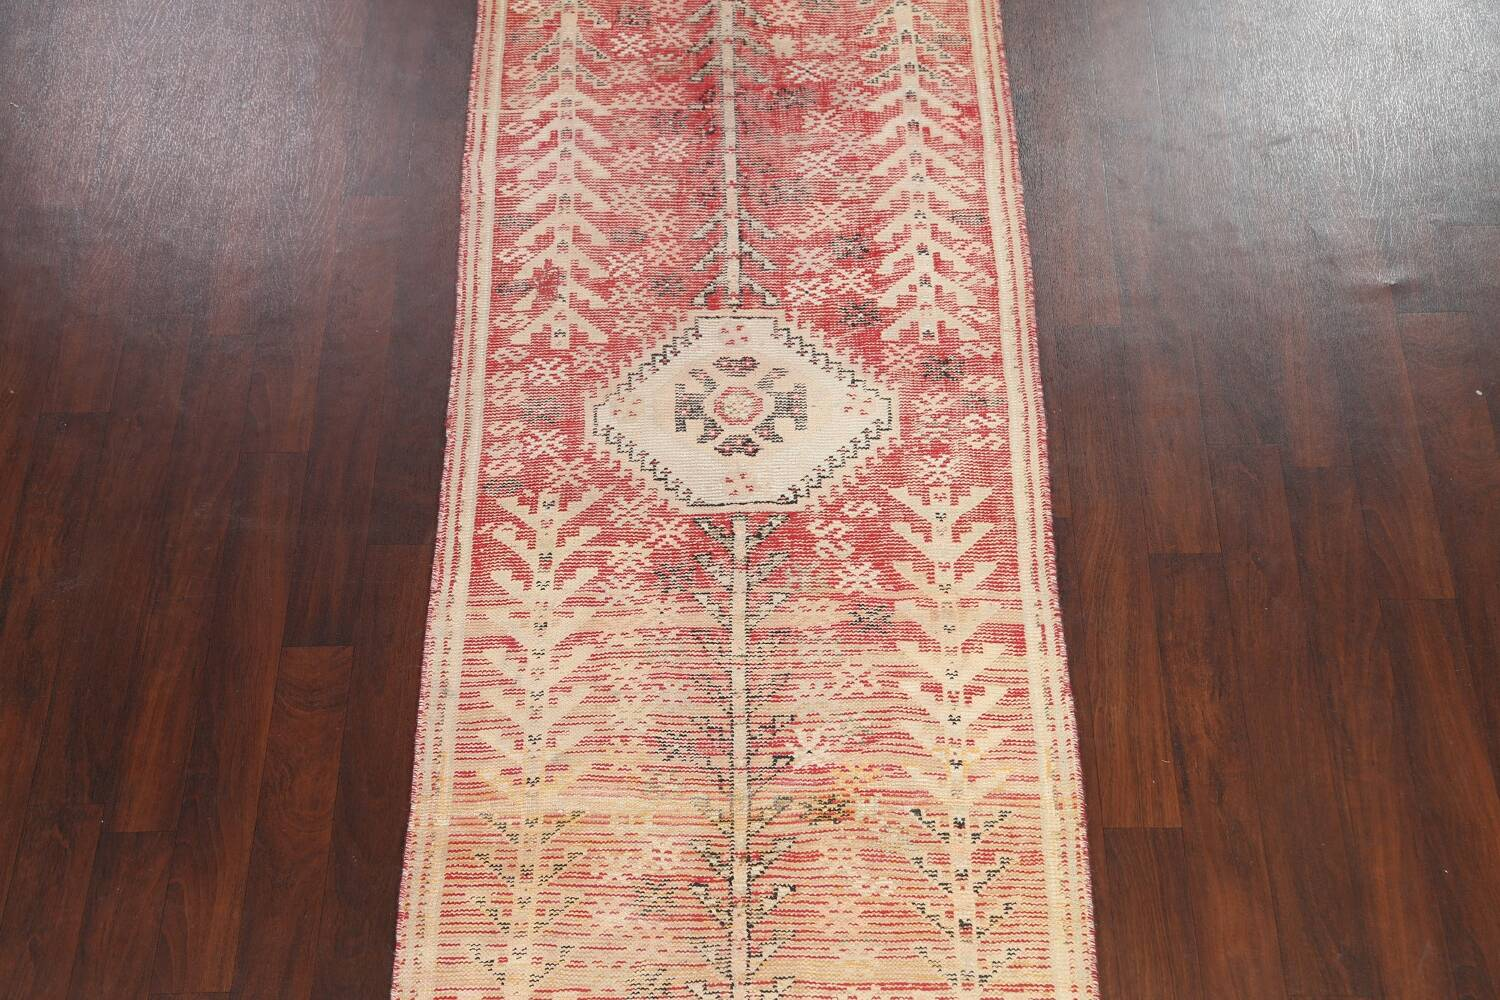 Antique Distressed Malayer Persian Runner Rug 4x12 image 3